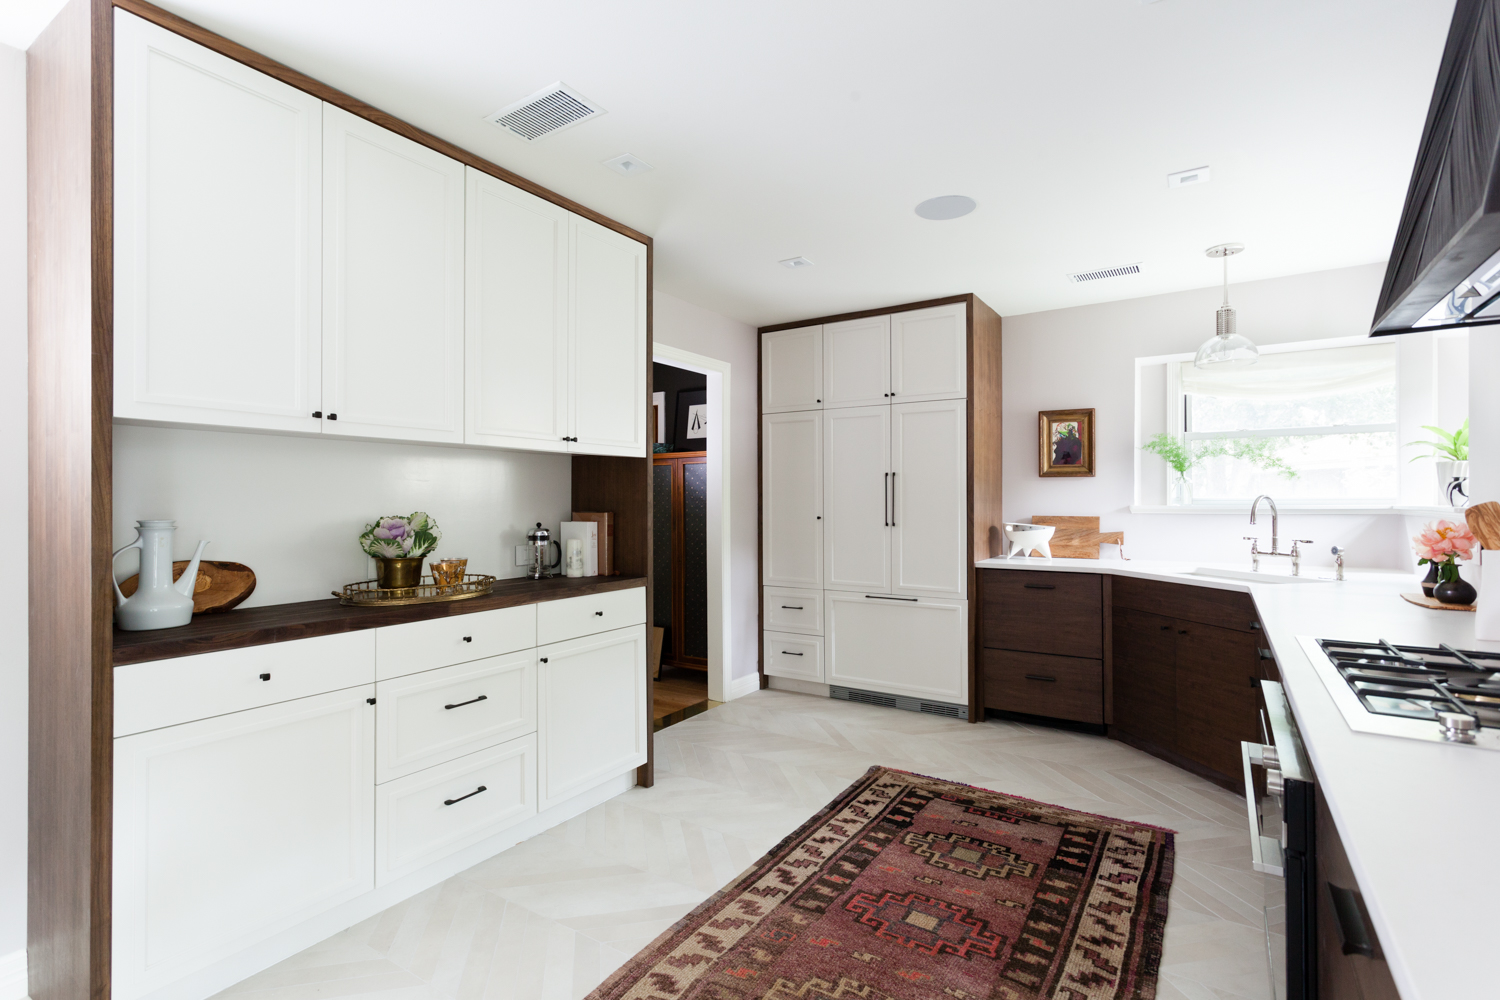 Walnut and white custom cabinets with chevron floors and an integrated refrigerator